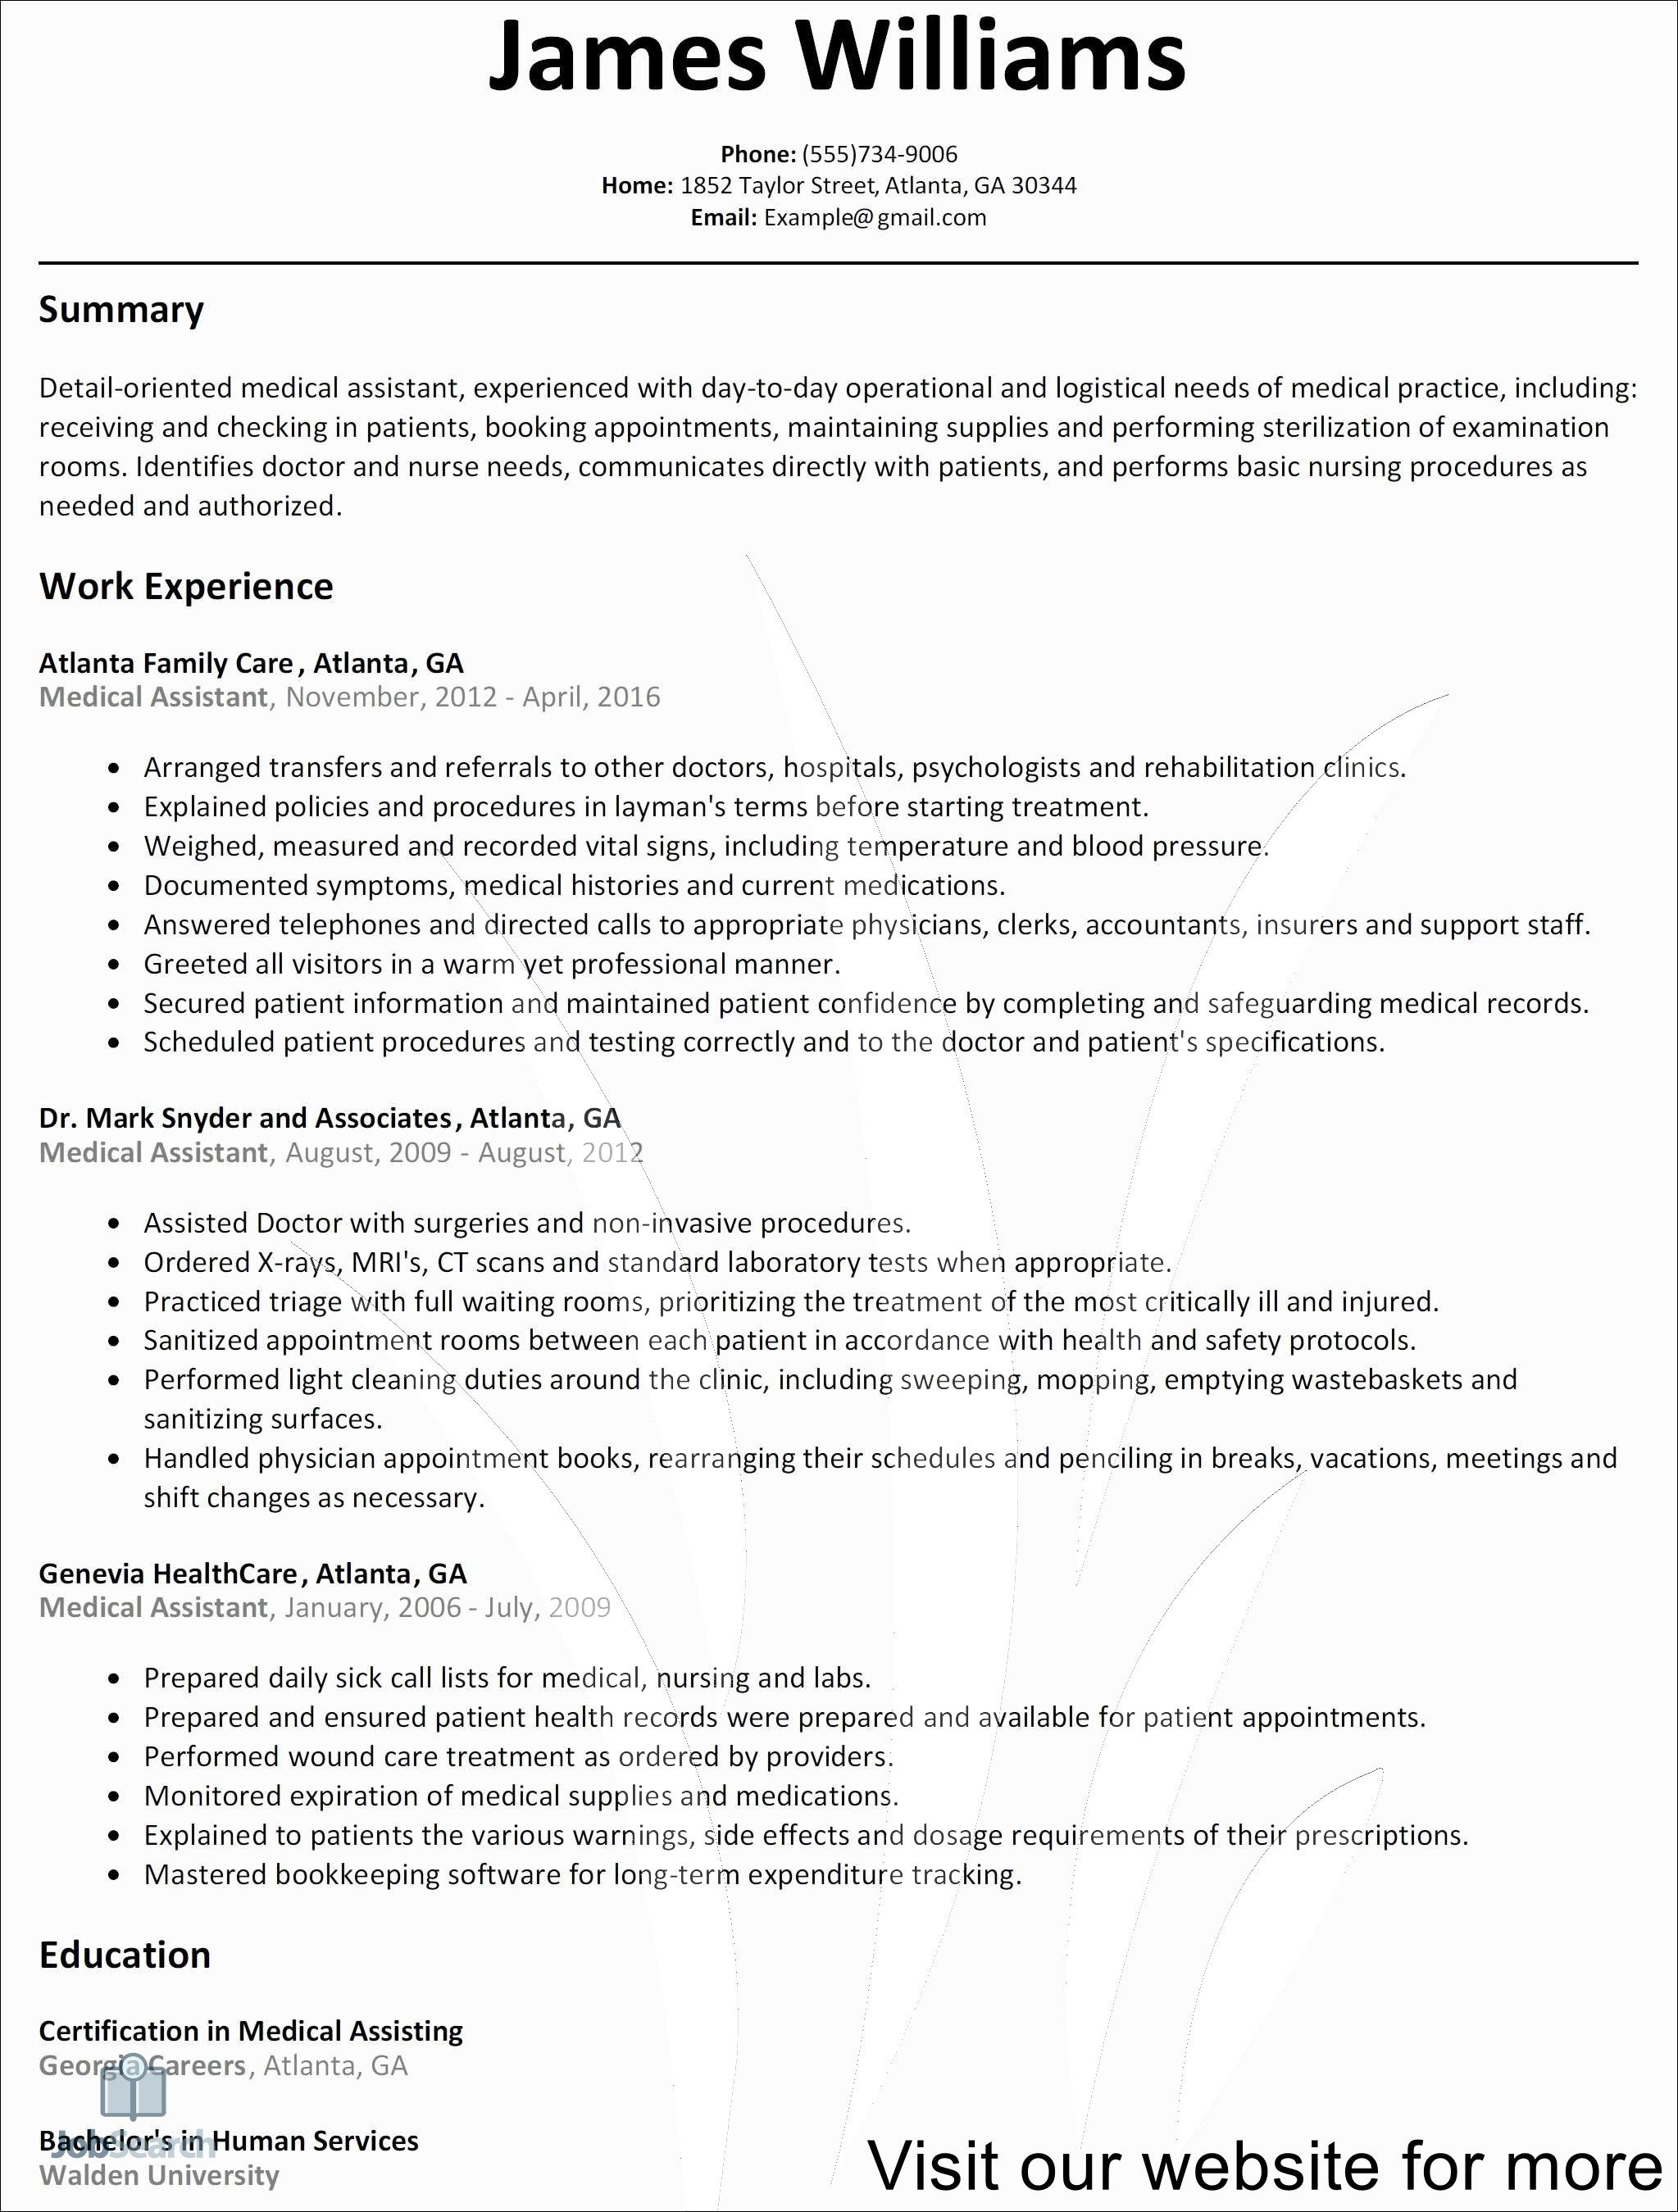 resume template consulting Professional in 2020 Resume